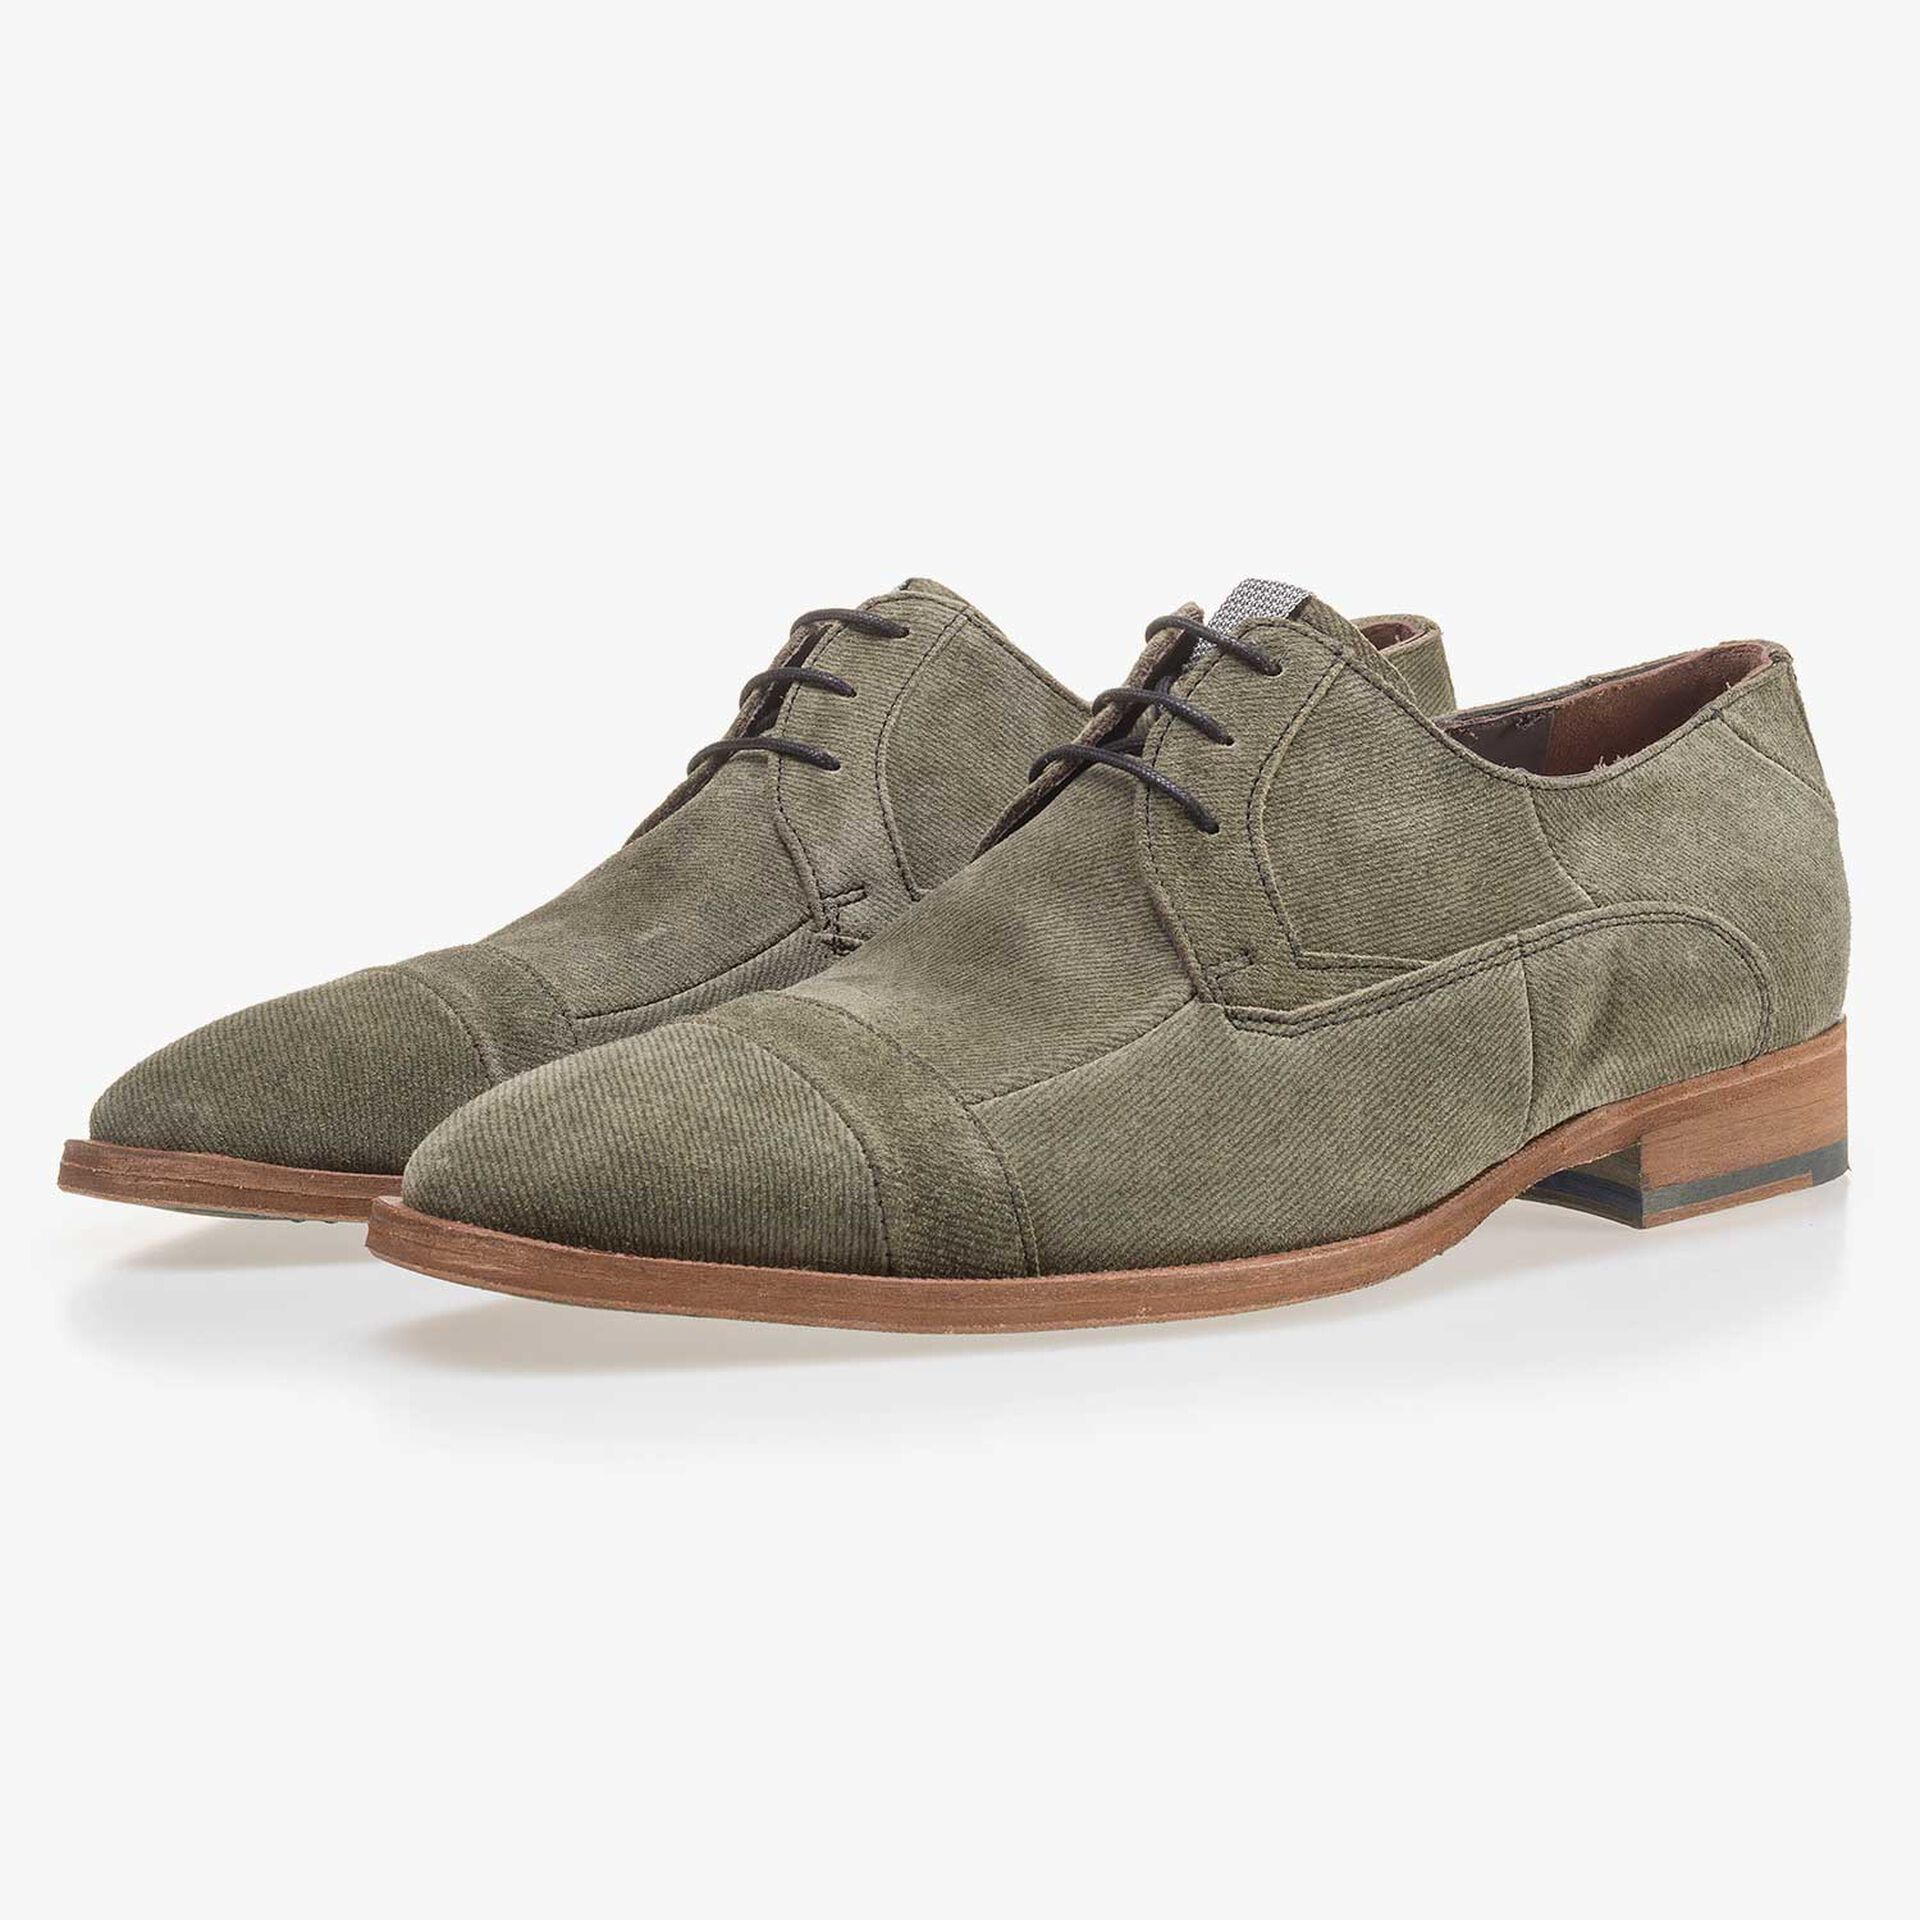 Olive green suede leather lace shoe